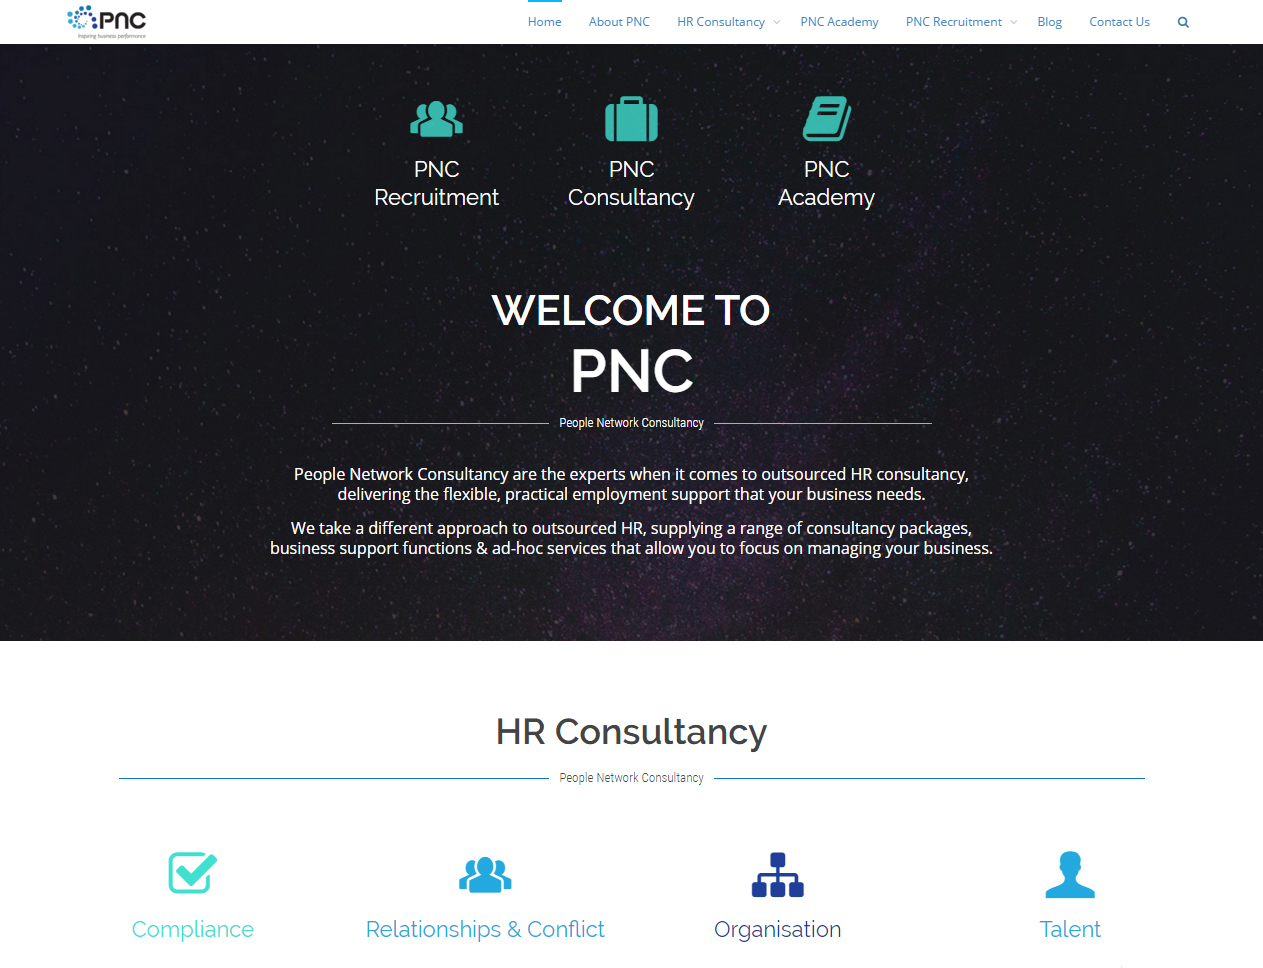 PNC people network consultancy